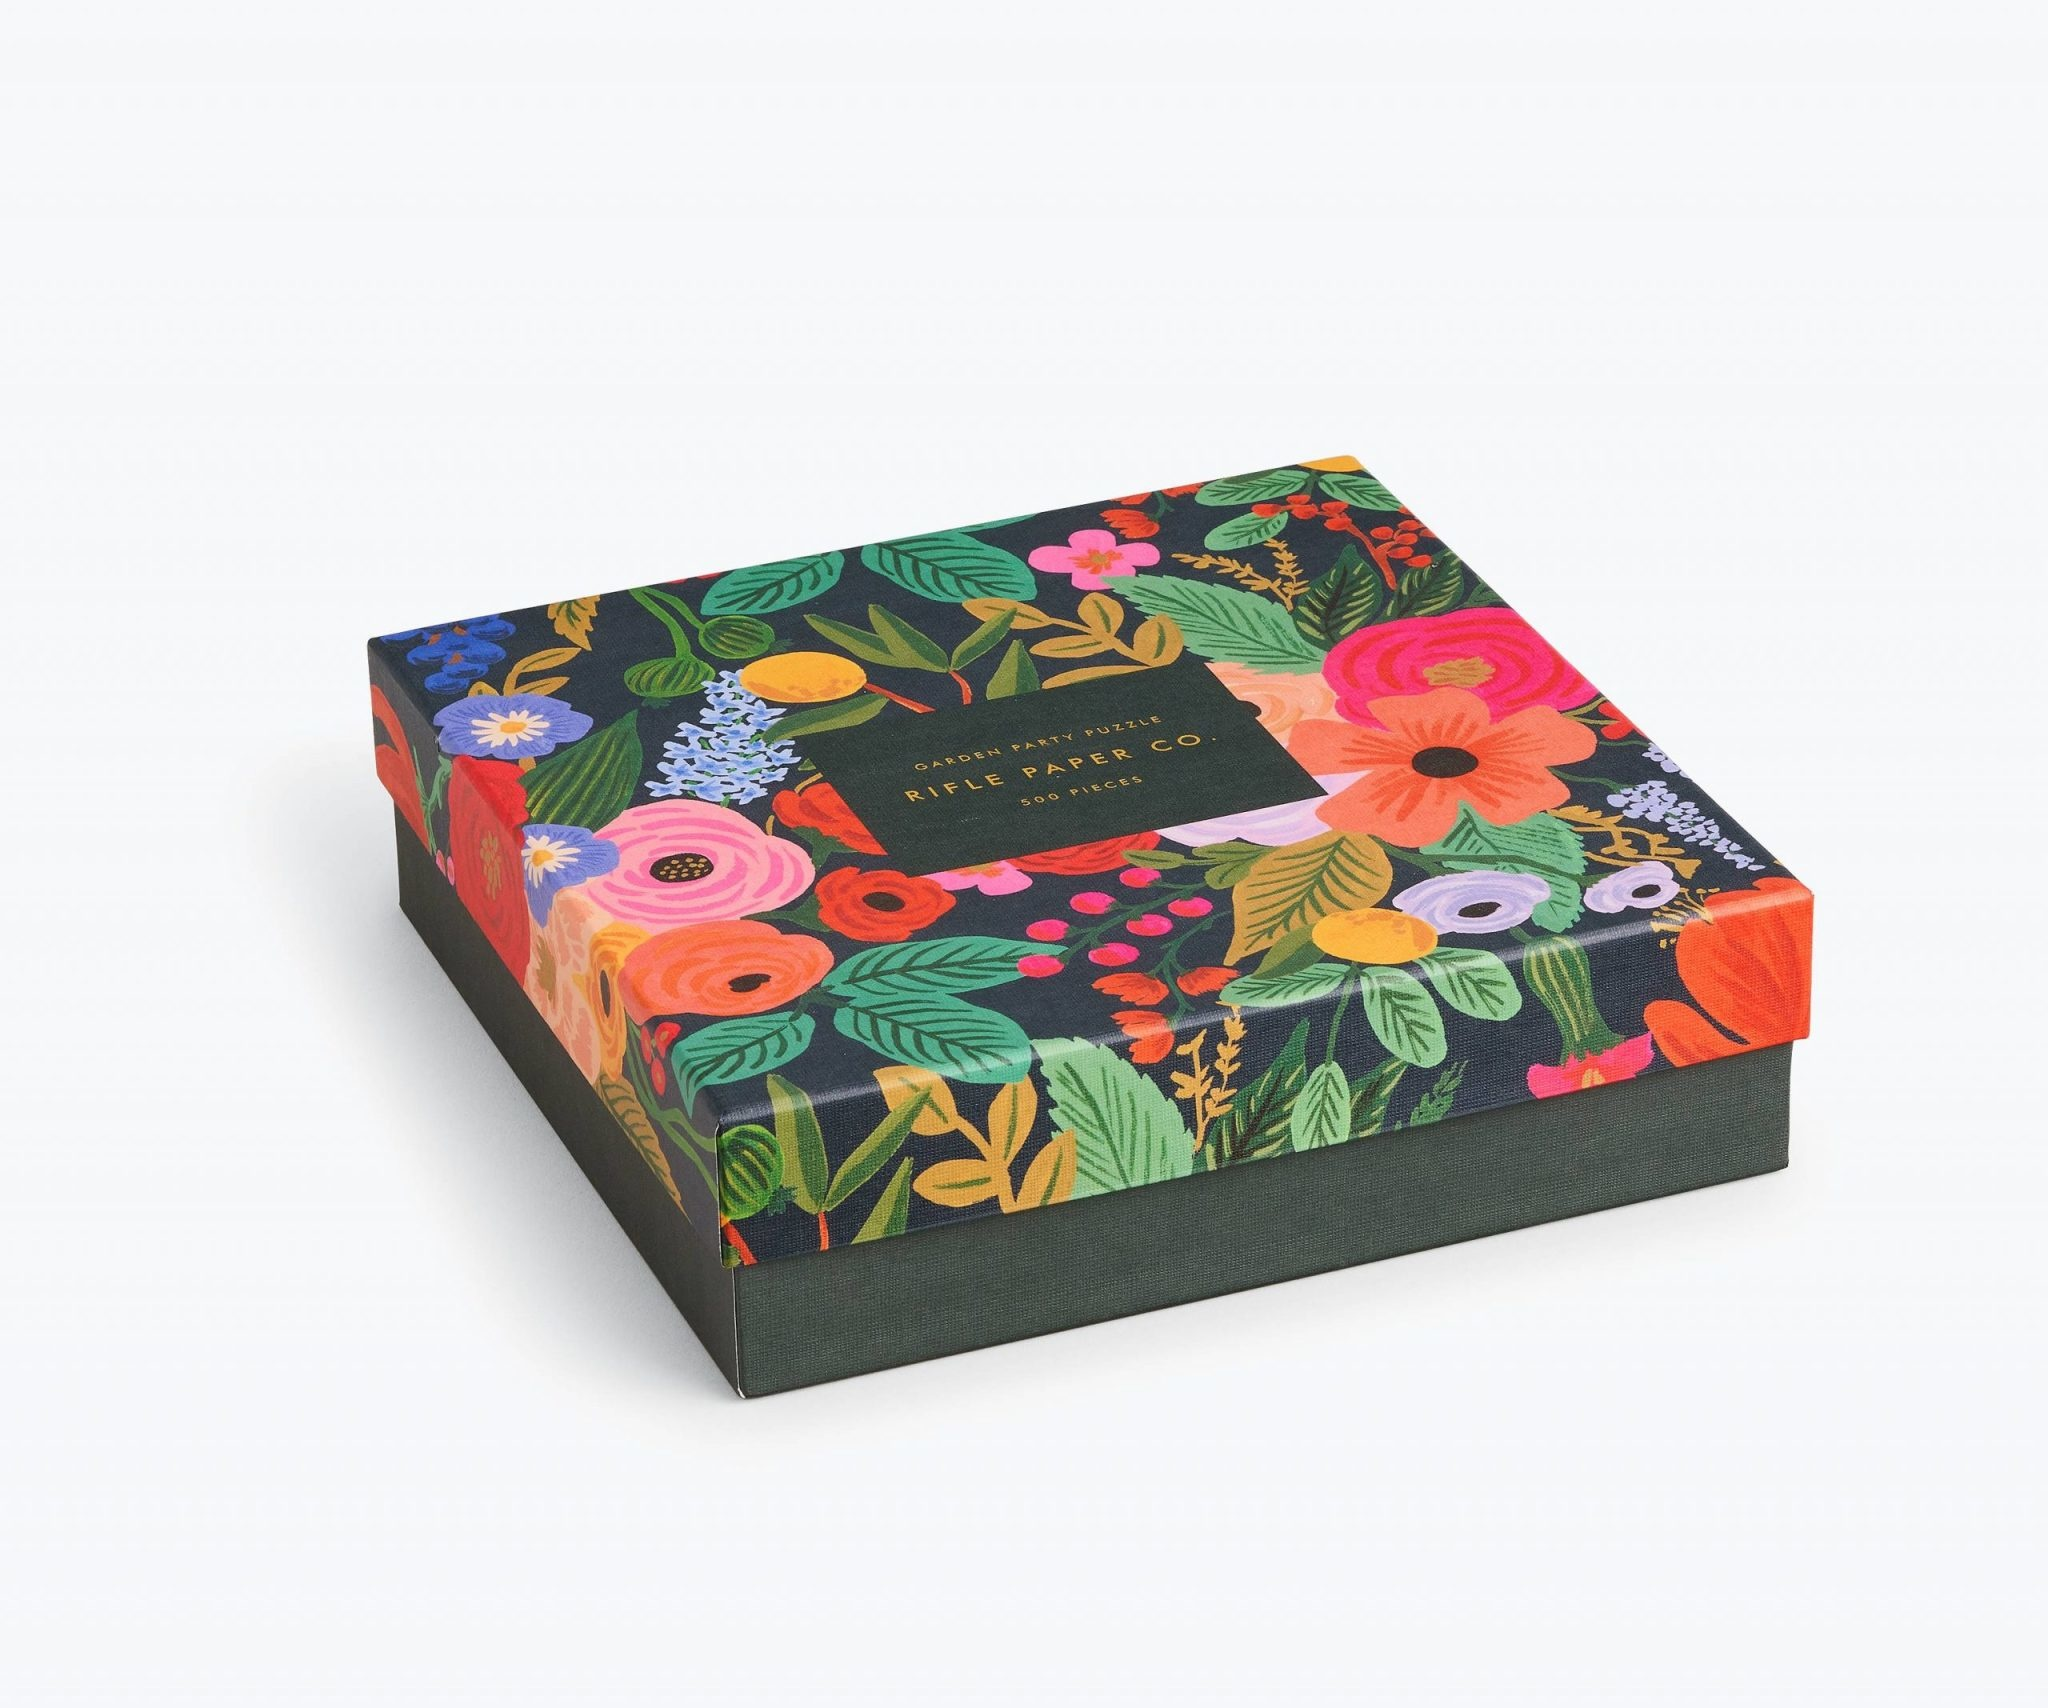 Rifle Paper Co. Jigsaw Puzzle - 500 Pieces - Garden Party